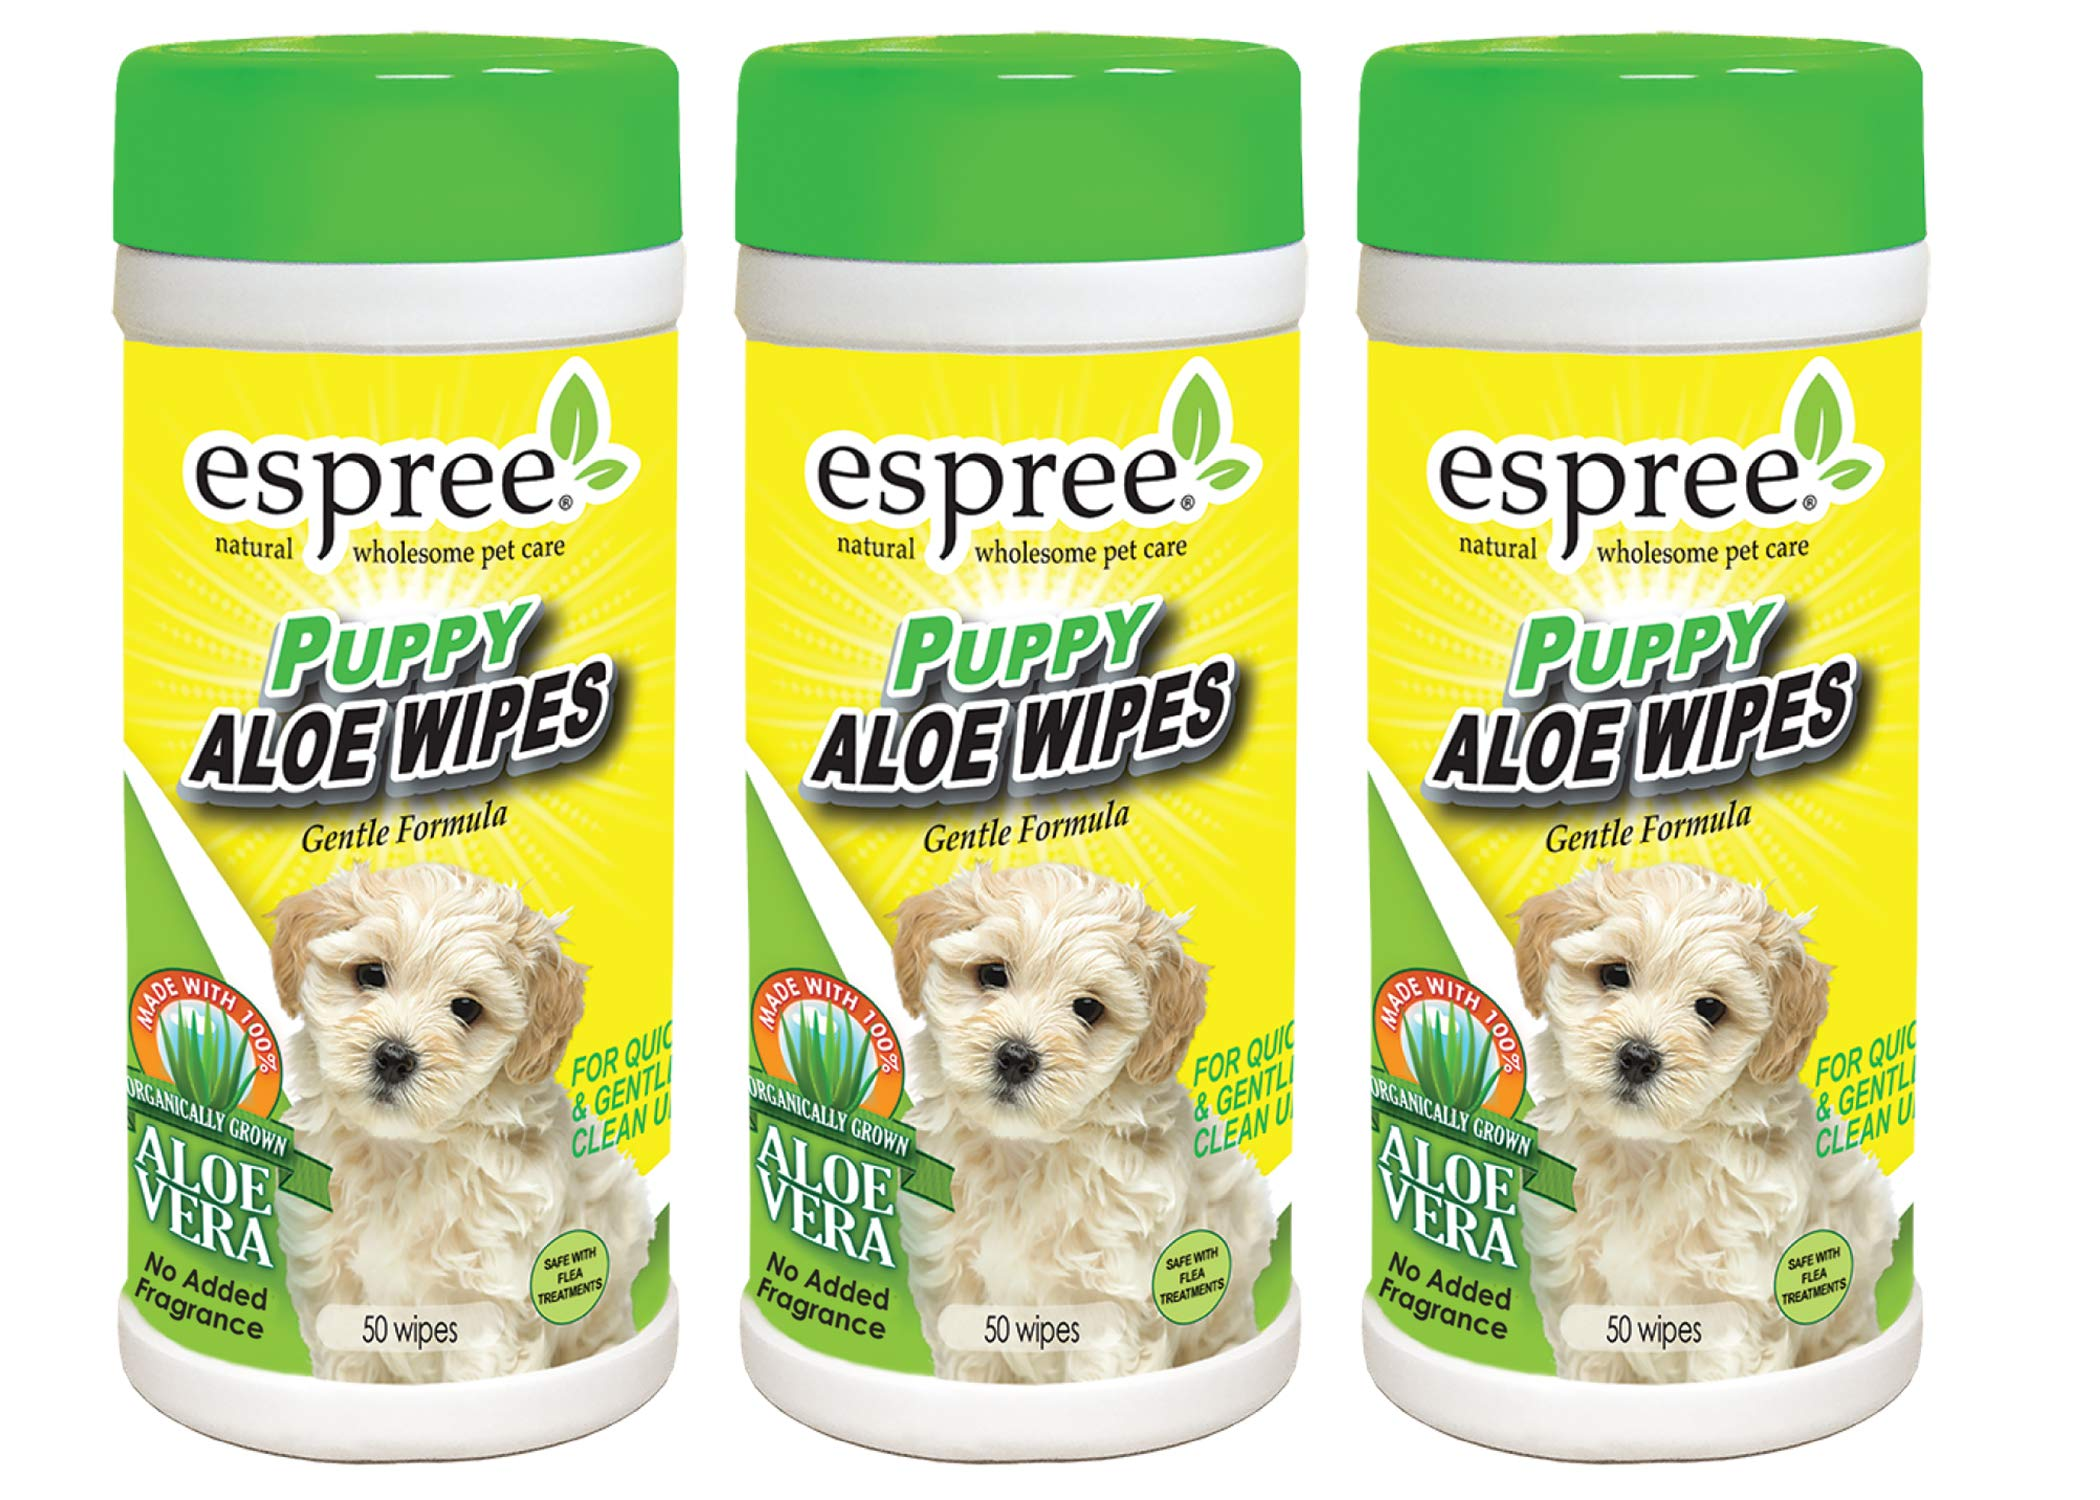 Espree Puppy Aloe Wipes 50 Count, Pack of 3